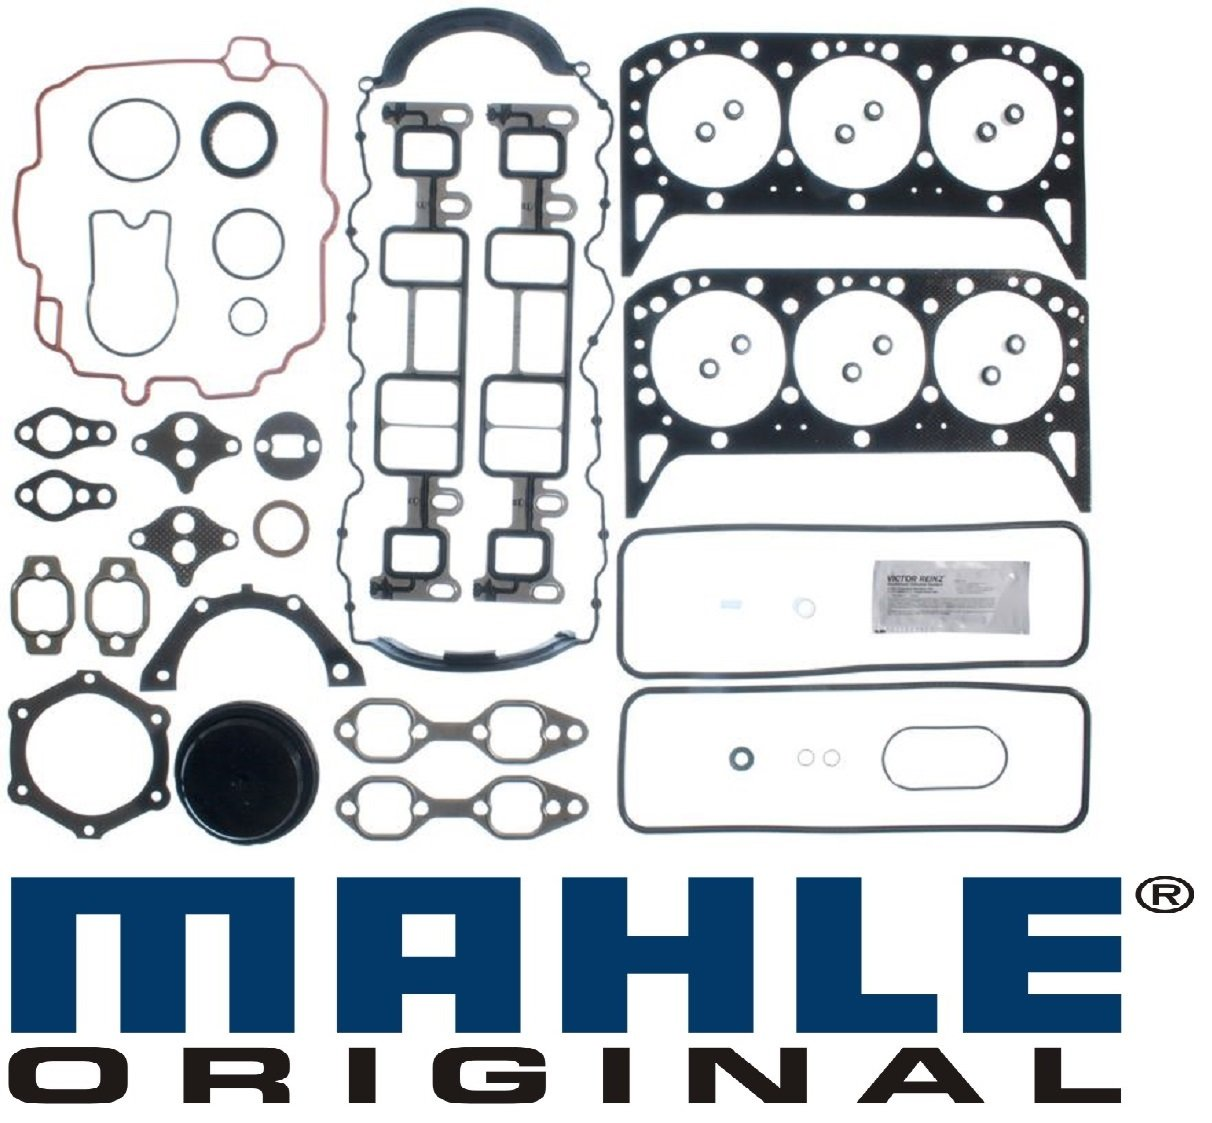 Mercruiser 4.3L 262 cid Chevy 1 Pc seal MARINE Full Gasket Set Head+Manifold+Oil Pan Vortec (4.3L 263cid)